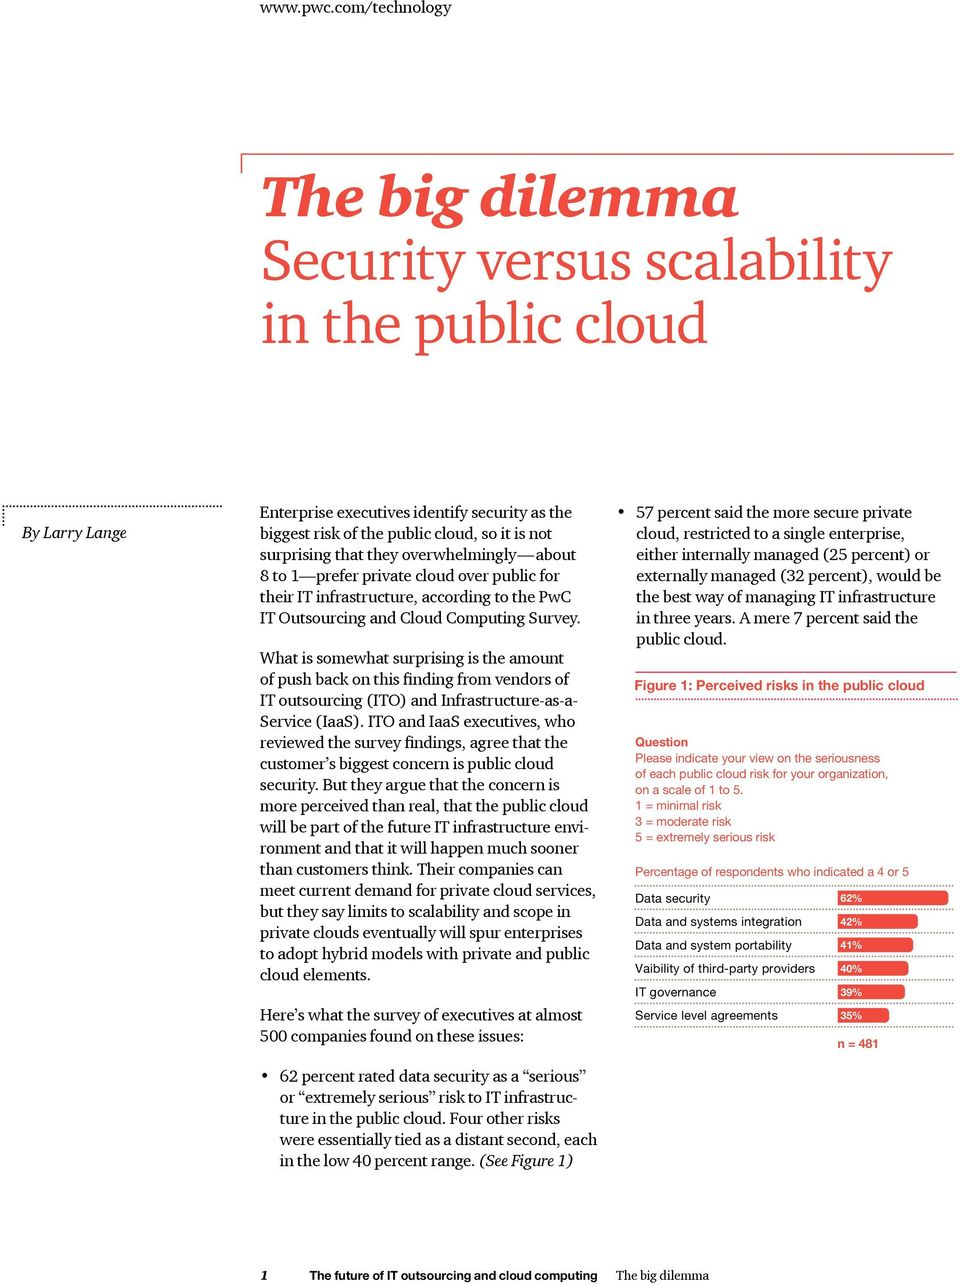 that they overwhelmingly about 8 to 1 prefer private cloud over public for their IT infrastructure, according to the PwC IT Outsourcing and Cloud Computing Survey.